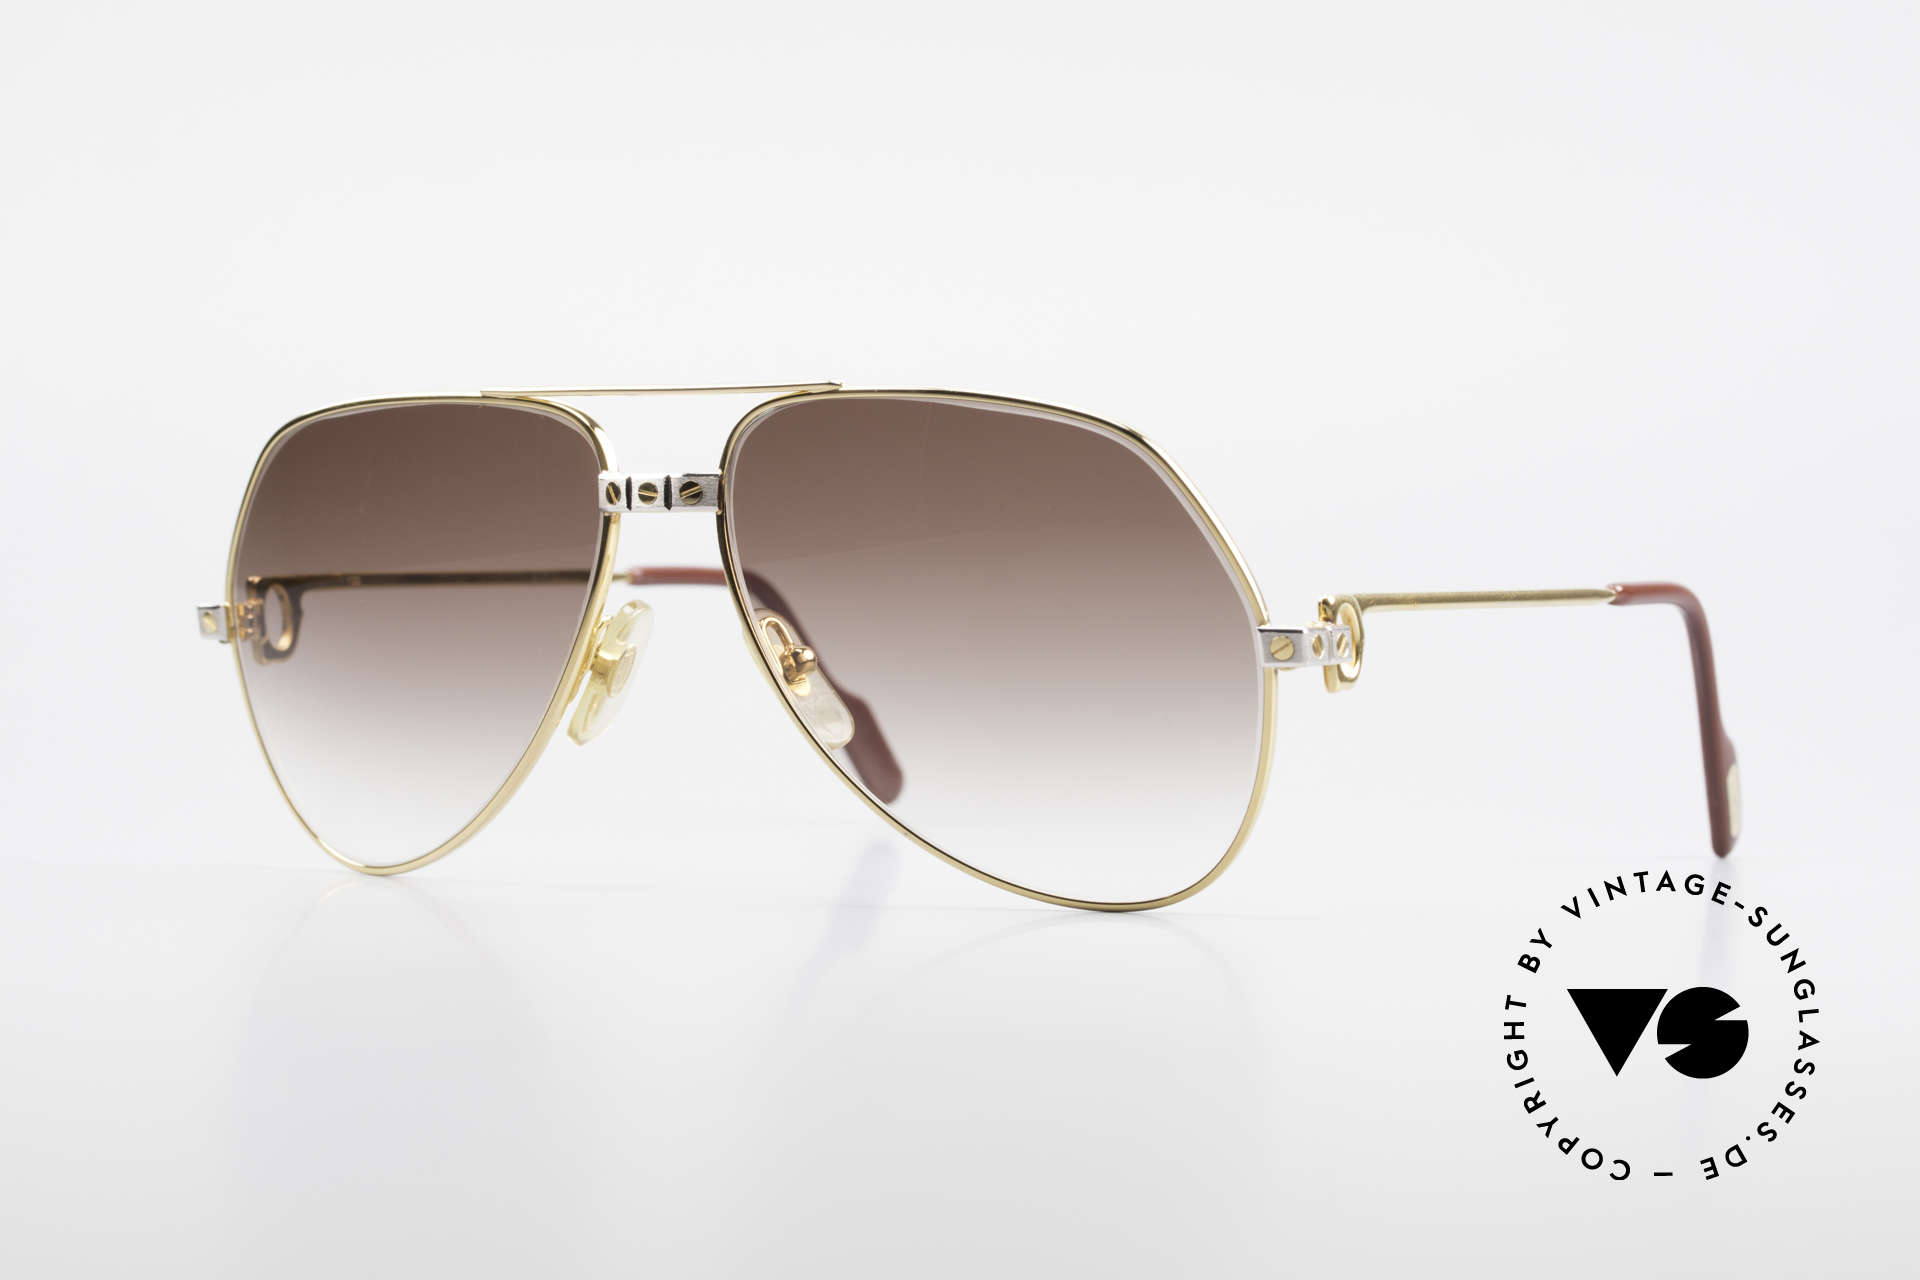 Cartier Vendome Santos - M Luxury 80's Aviator Shades, Vendome = the most famous eyewear design by CARTIER, Made for Men and Women